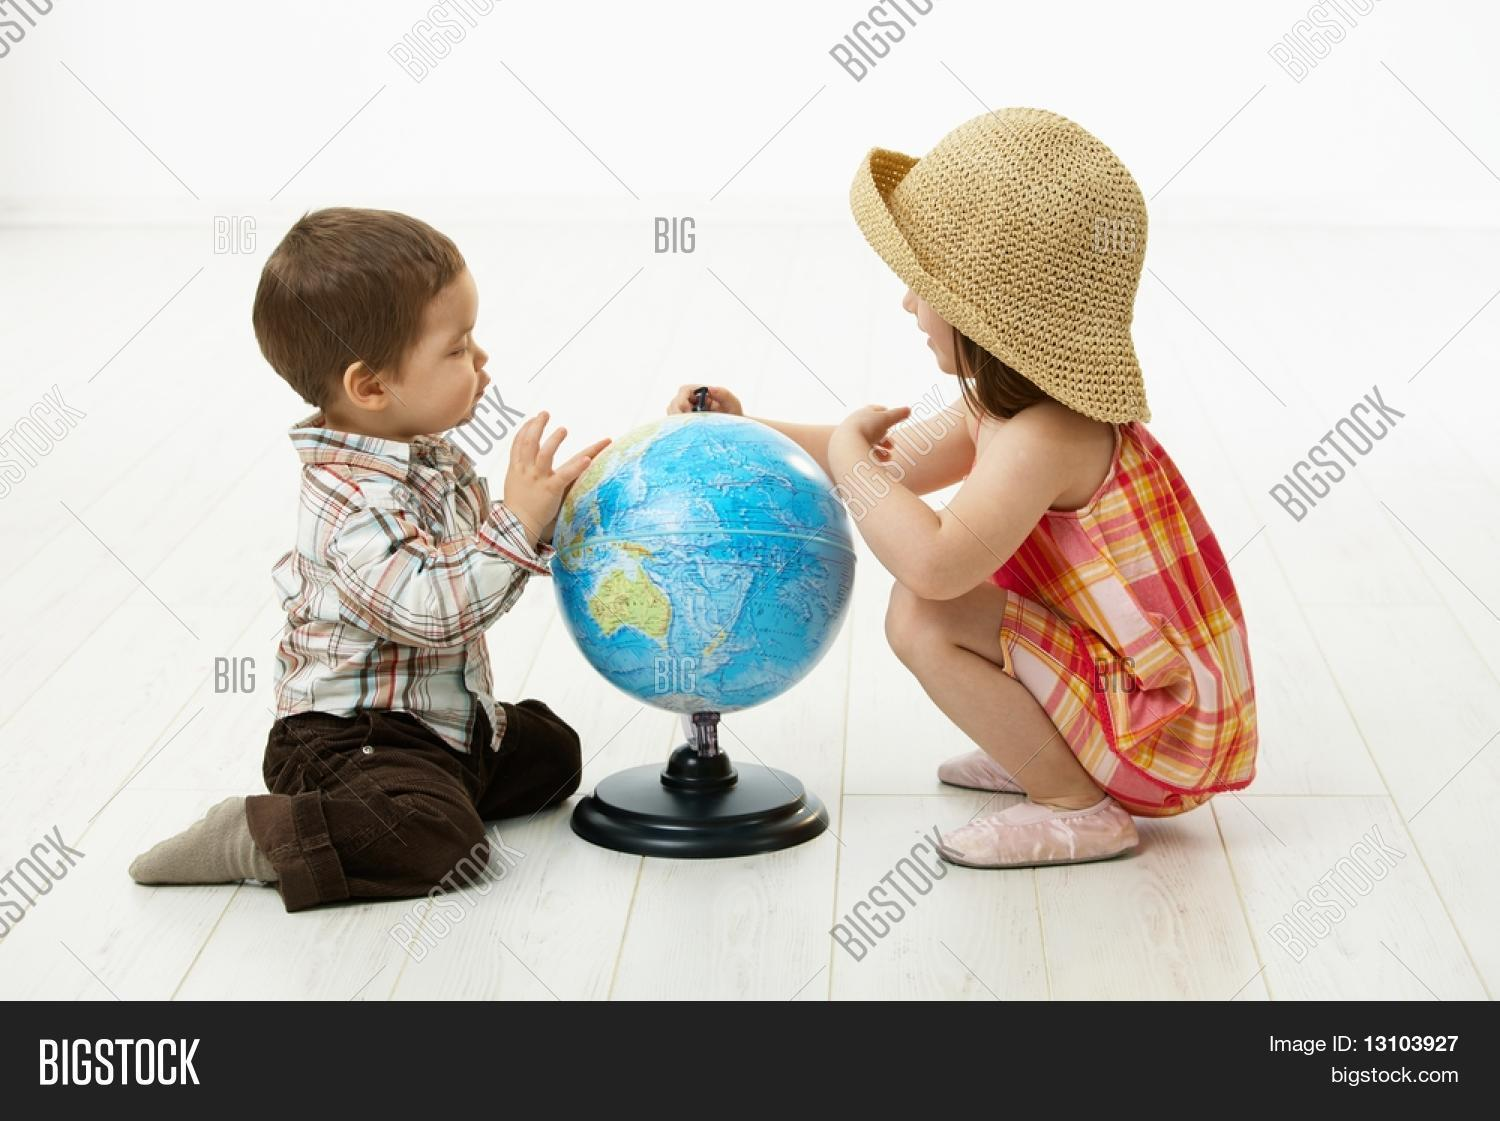 2,2-3,adorable,american,background,boy,brother,brown,caucasian,child,crouching,cute,daughter,enjoy,enjoyment,face,female,five,floor,full,fun,girl,globe,hair,have,horizontal,image,isolated,joy,joyful,joyous,kid,length,little,over,people,people white background,person,photo,playing,siblings,sit,size,stockphoto,toddler,toddlers playing,two,white,years